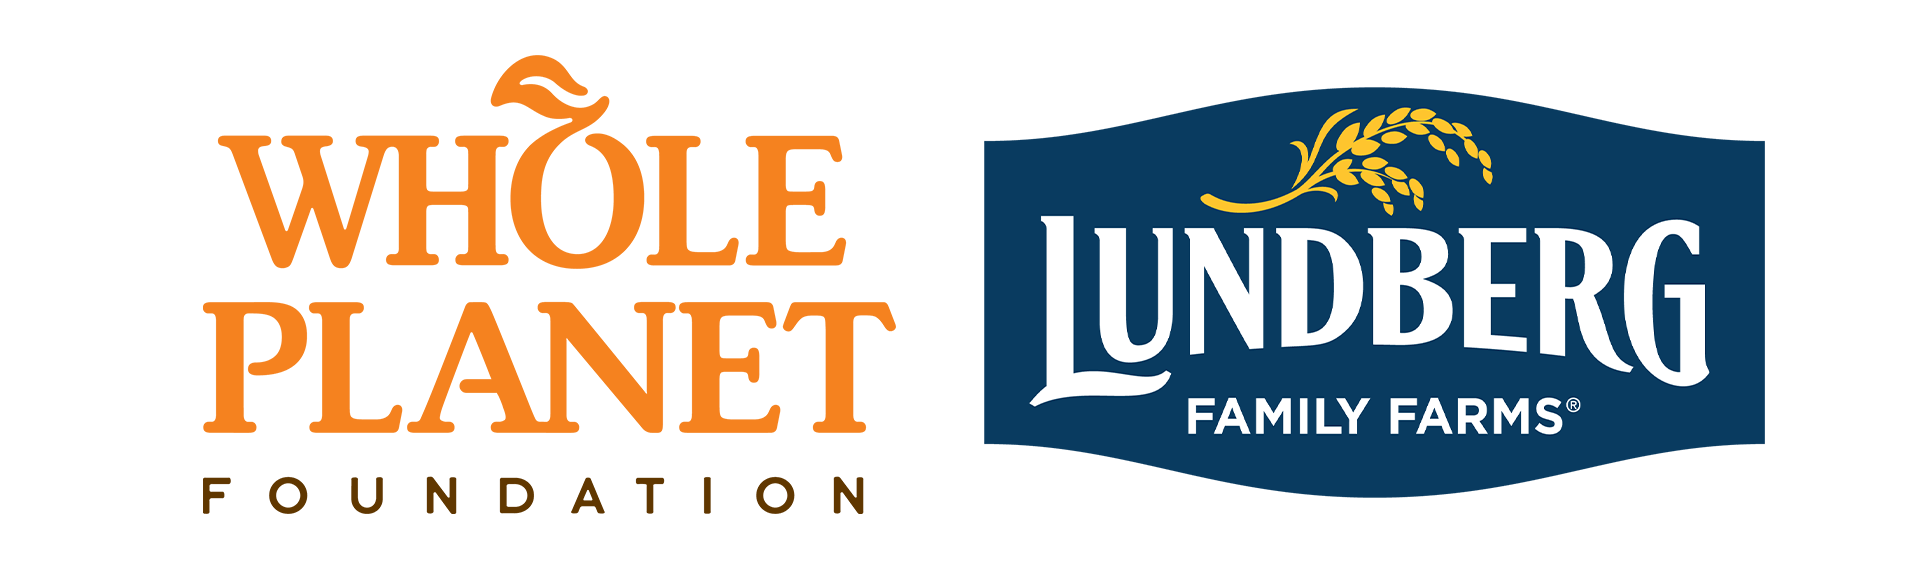 Whole Planet Foundation and Lundberg Family Farms Logos